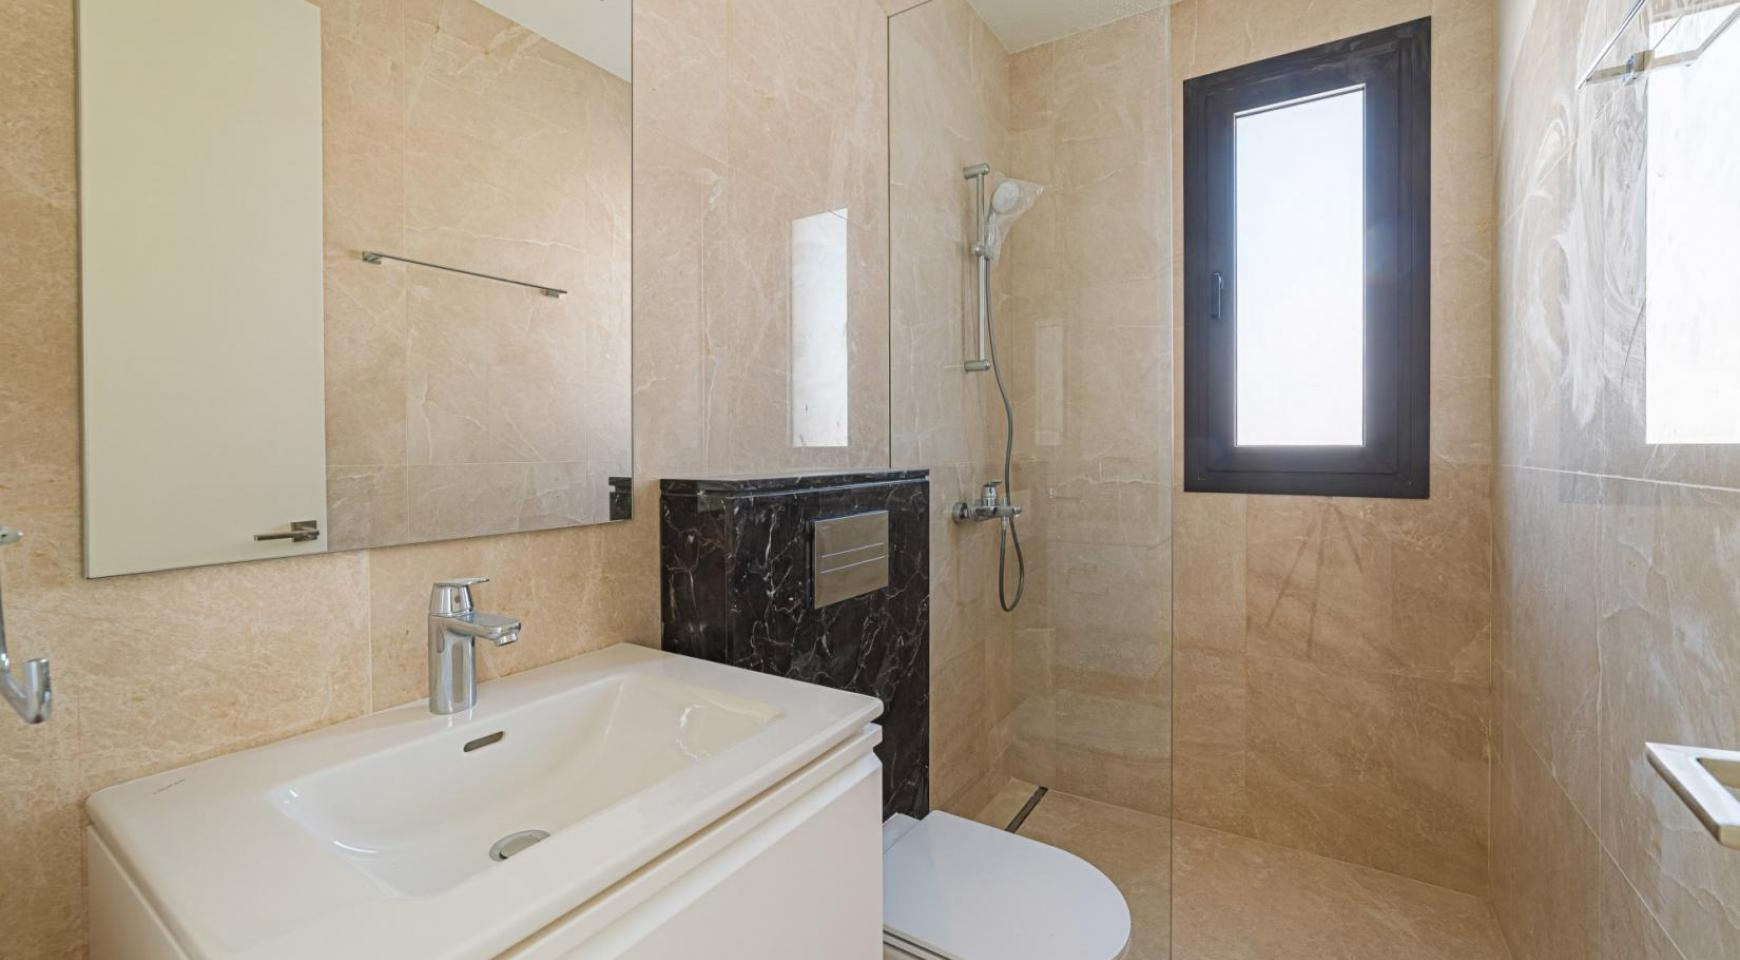 Hortensia Residence, Apt. 202. 2 Bedroom Apartment within a New Complex near the Sea  - 44